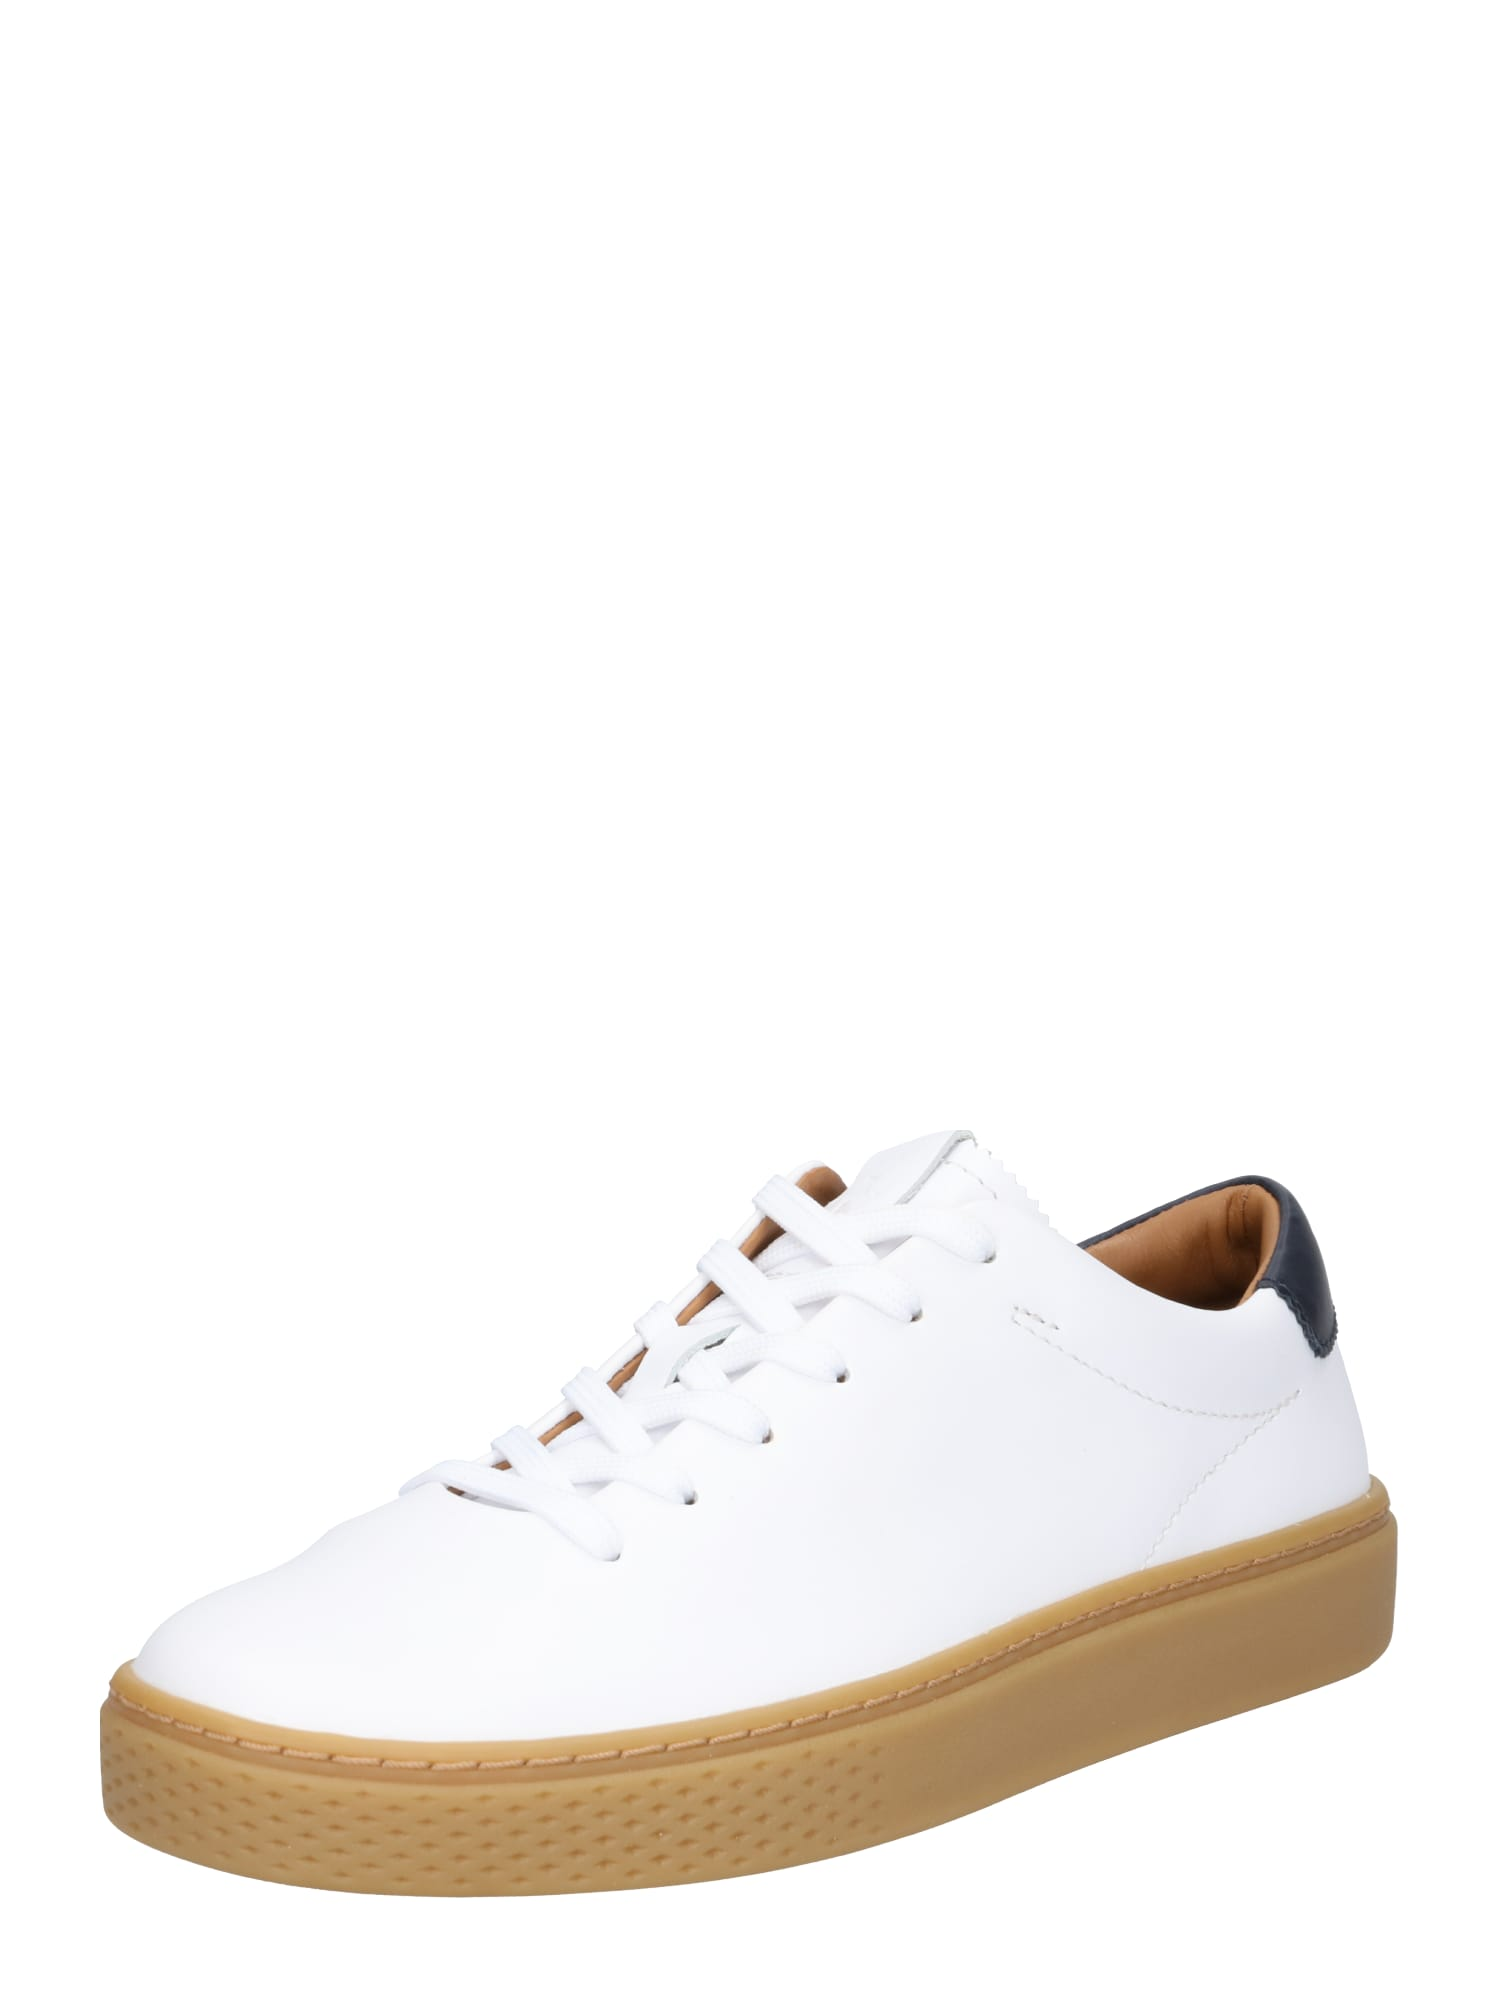 Tenisky PKD COURT125-SNEAKERS-ATHLETIC SHOE bílá POLO RALPH LAUREN